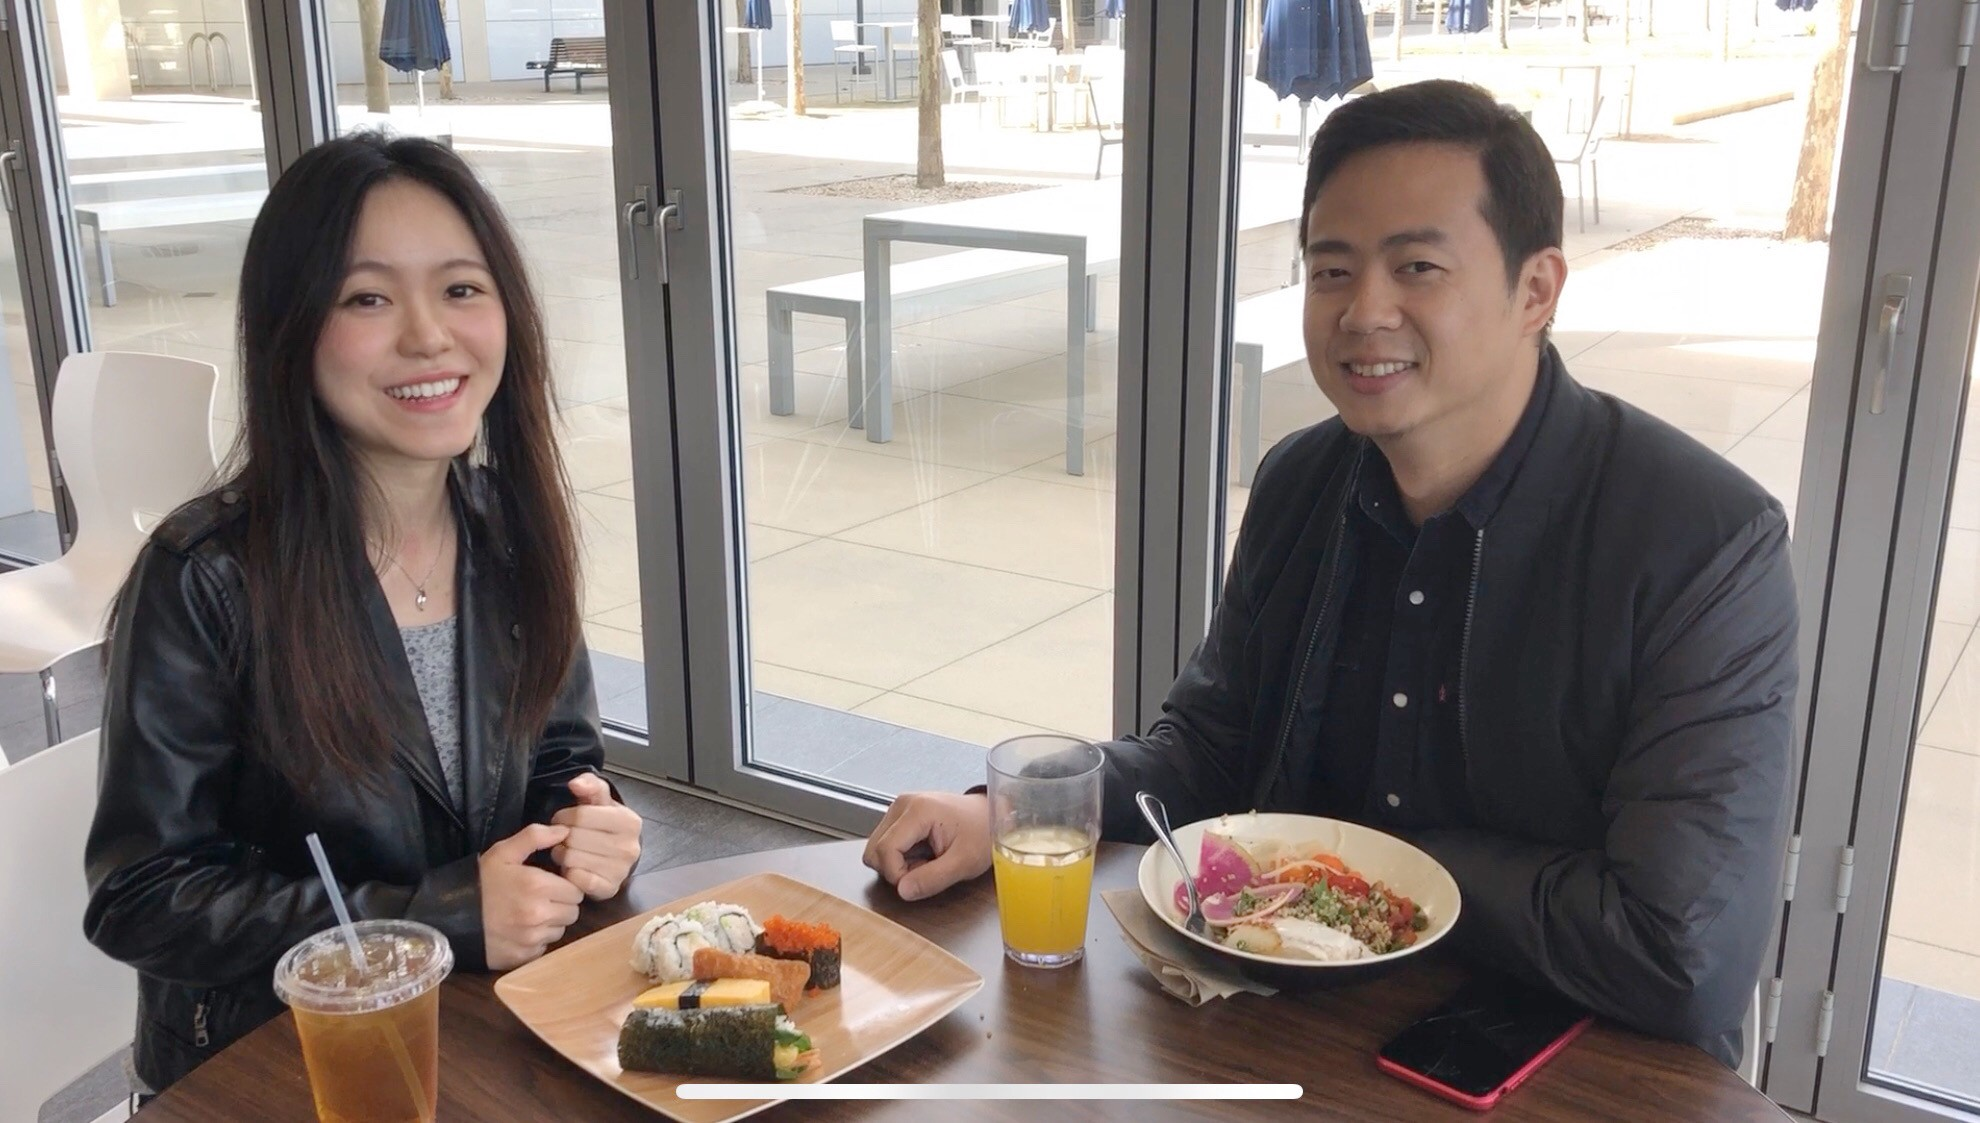 April enjoying lunch with a designer